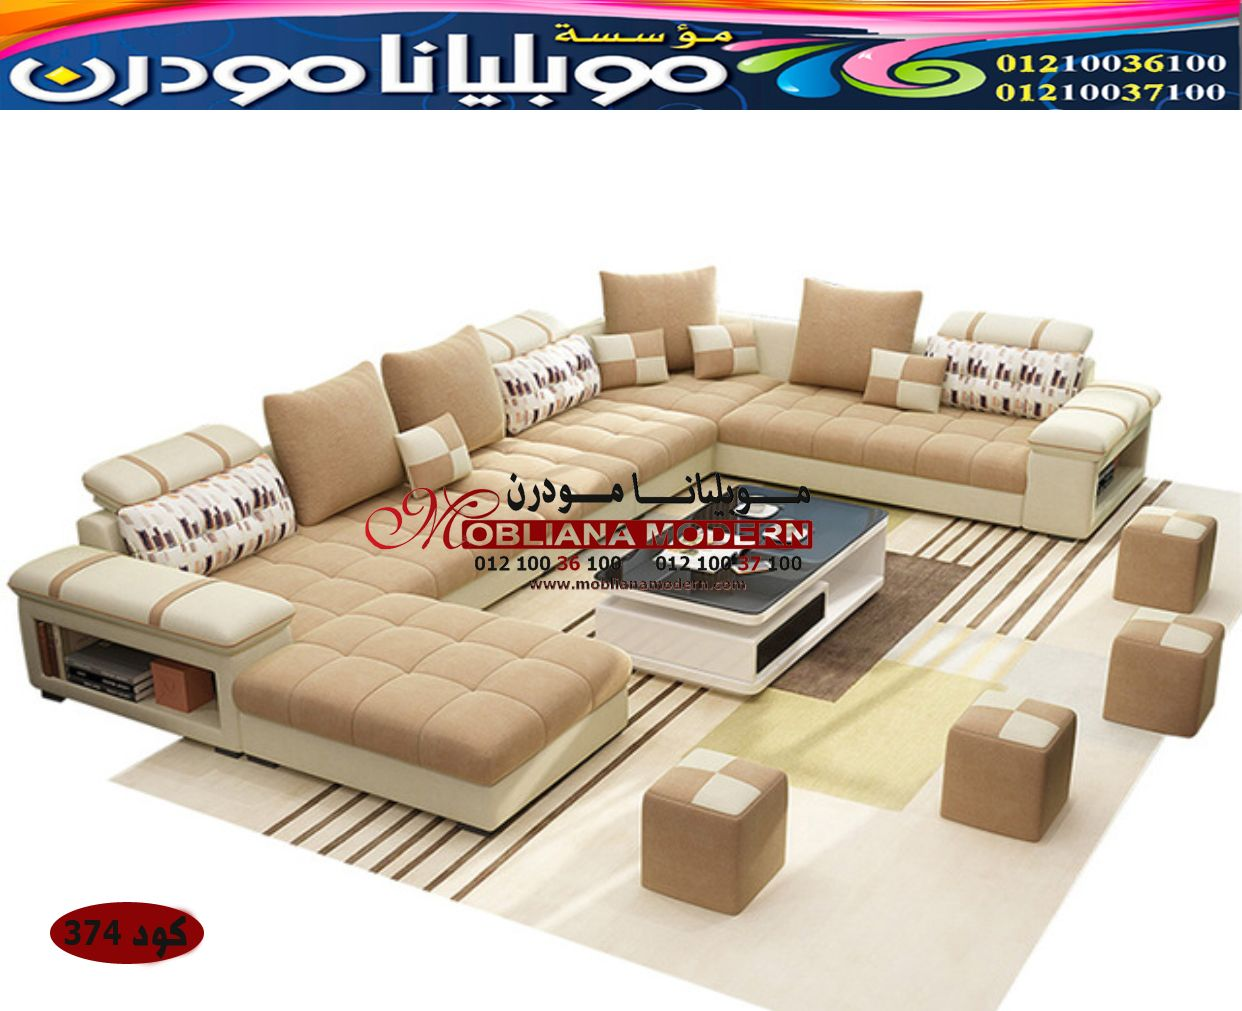 احدث صور الركنات Modern Furniture Sameh Home Room Design House Rooms Room Design